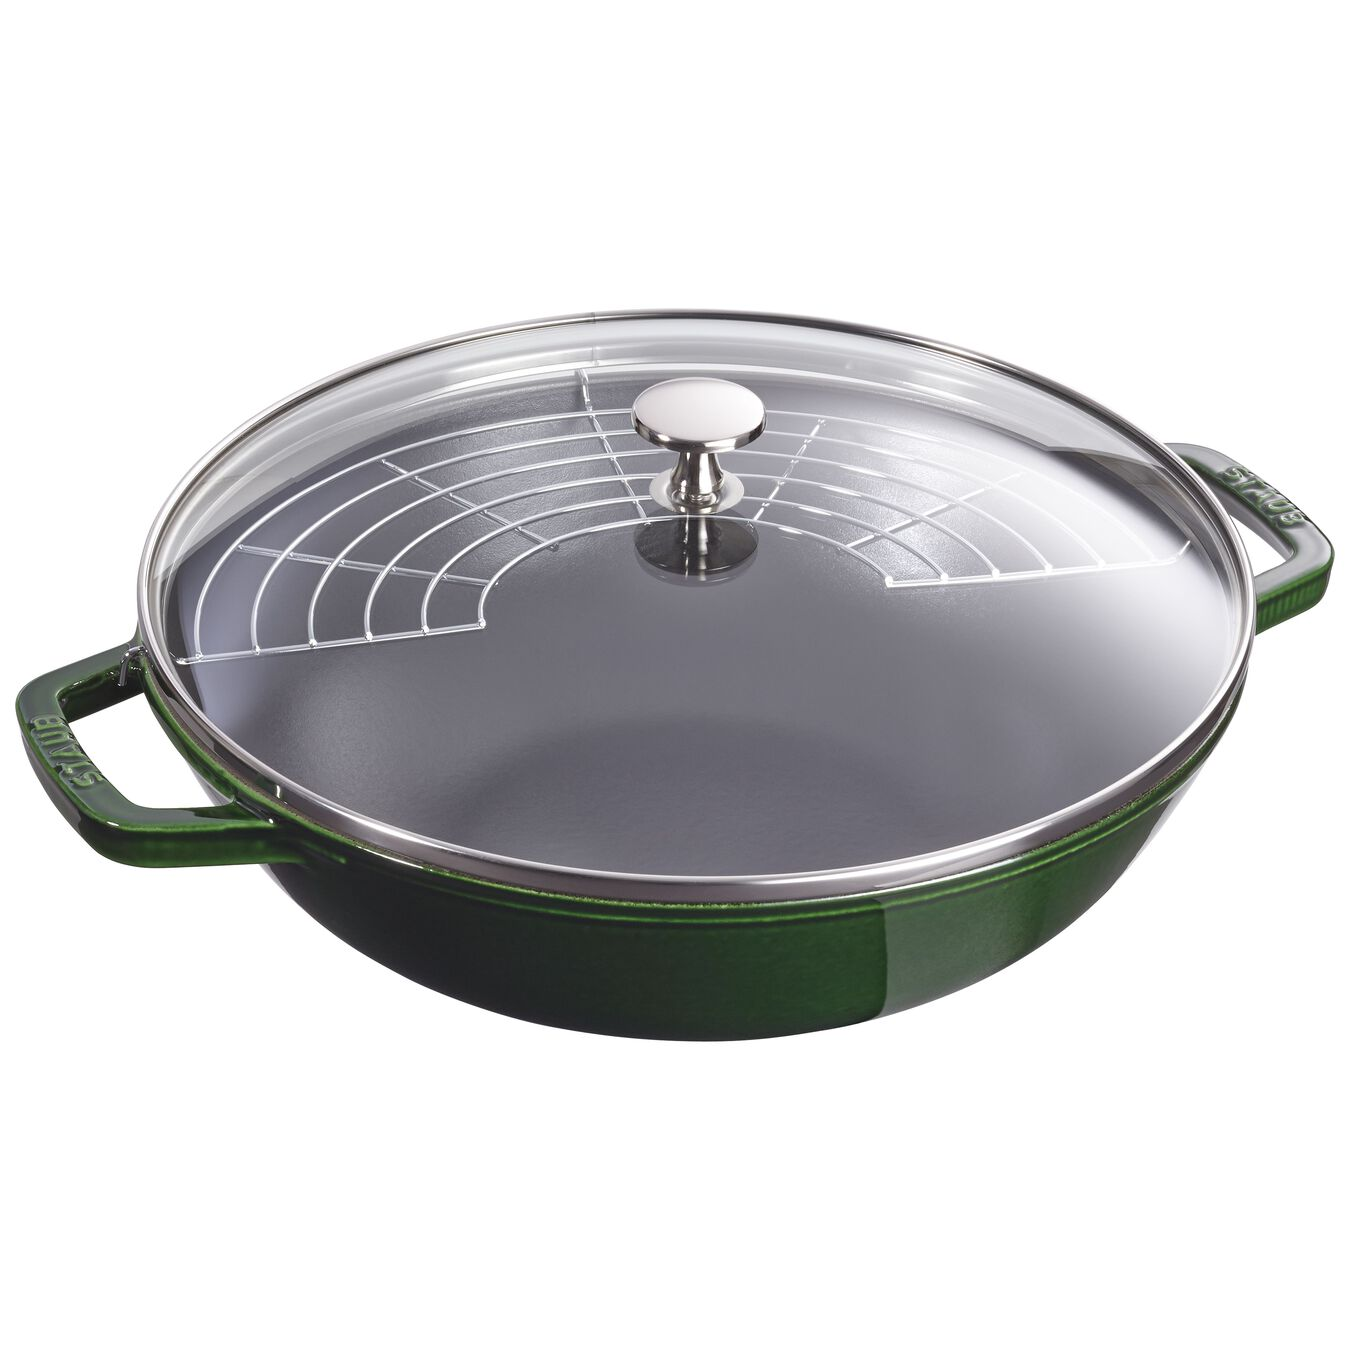 30 cm / 12 inch Wok with glass lid, basil-green,,large 2